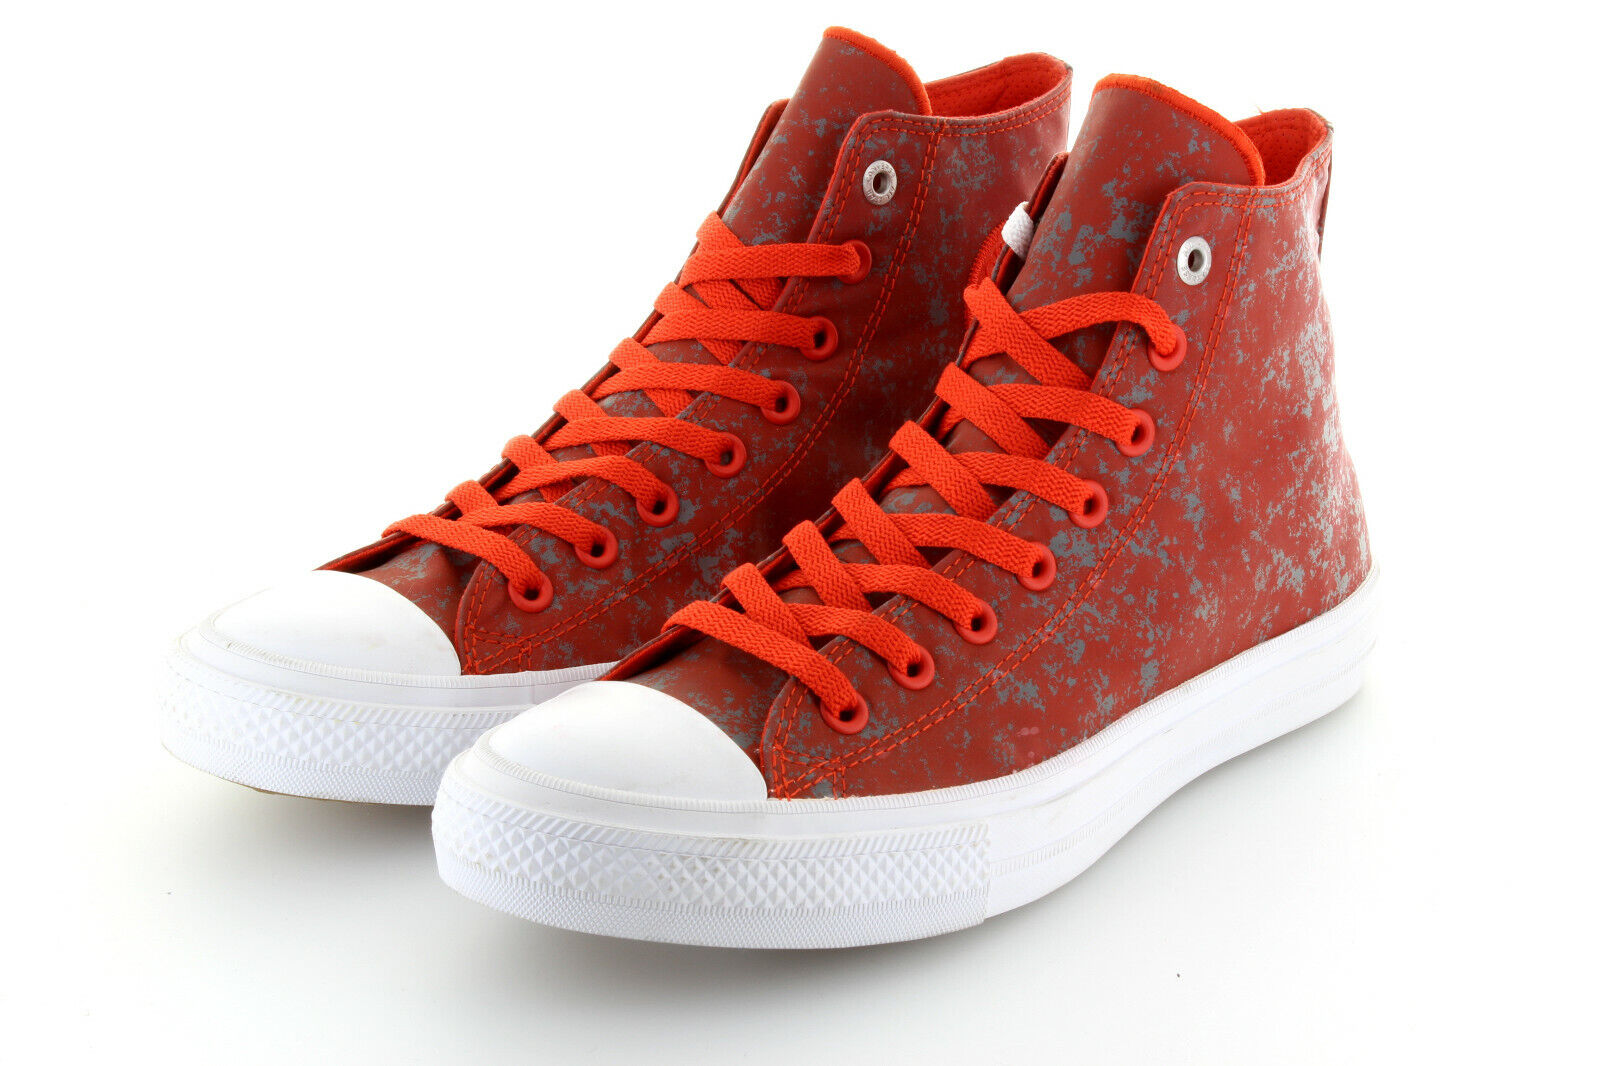 Converse Chuck Taylor AS II Hi Signal rot Pure Silber Textile Shine 42,5 43 US9    | Rich-pünktliche Lieferung